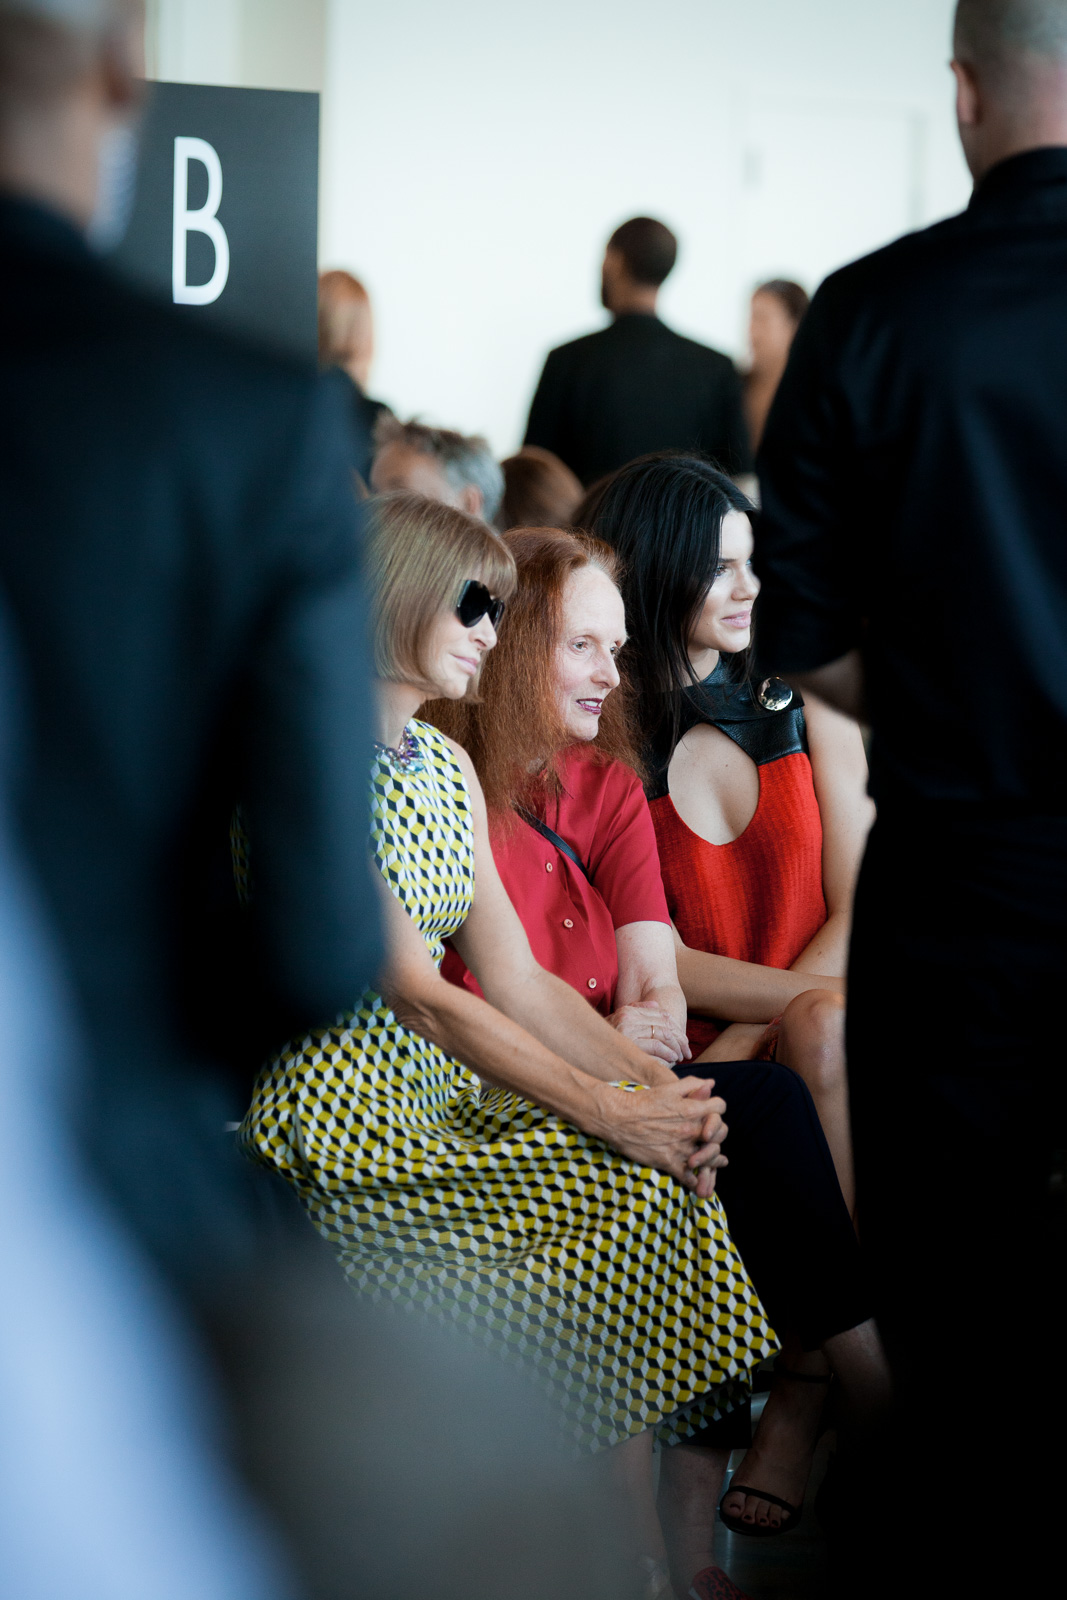 Anna Wintour and Grace Coddington at Calvin Klein Spring 2016 Runway Show All Access during New York Fashion Week at Spring Studios on September 17, 2015 in New York City, USA.